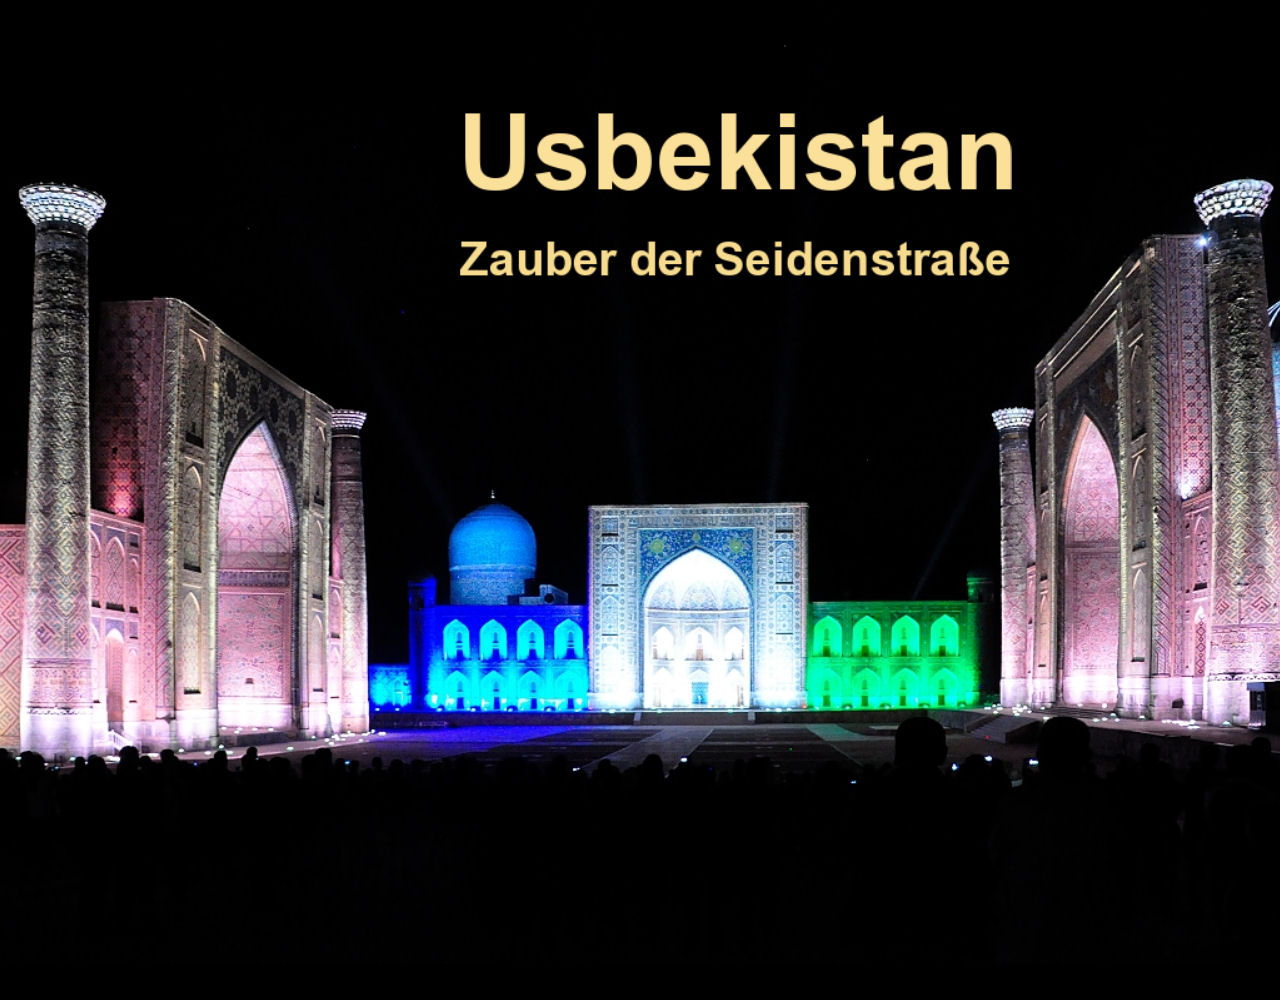 Multimediaschau Usbekistan